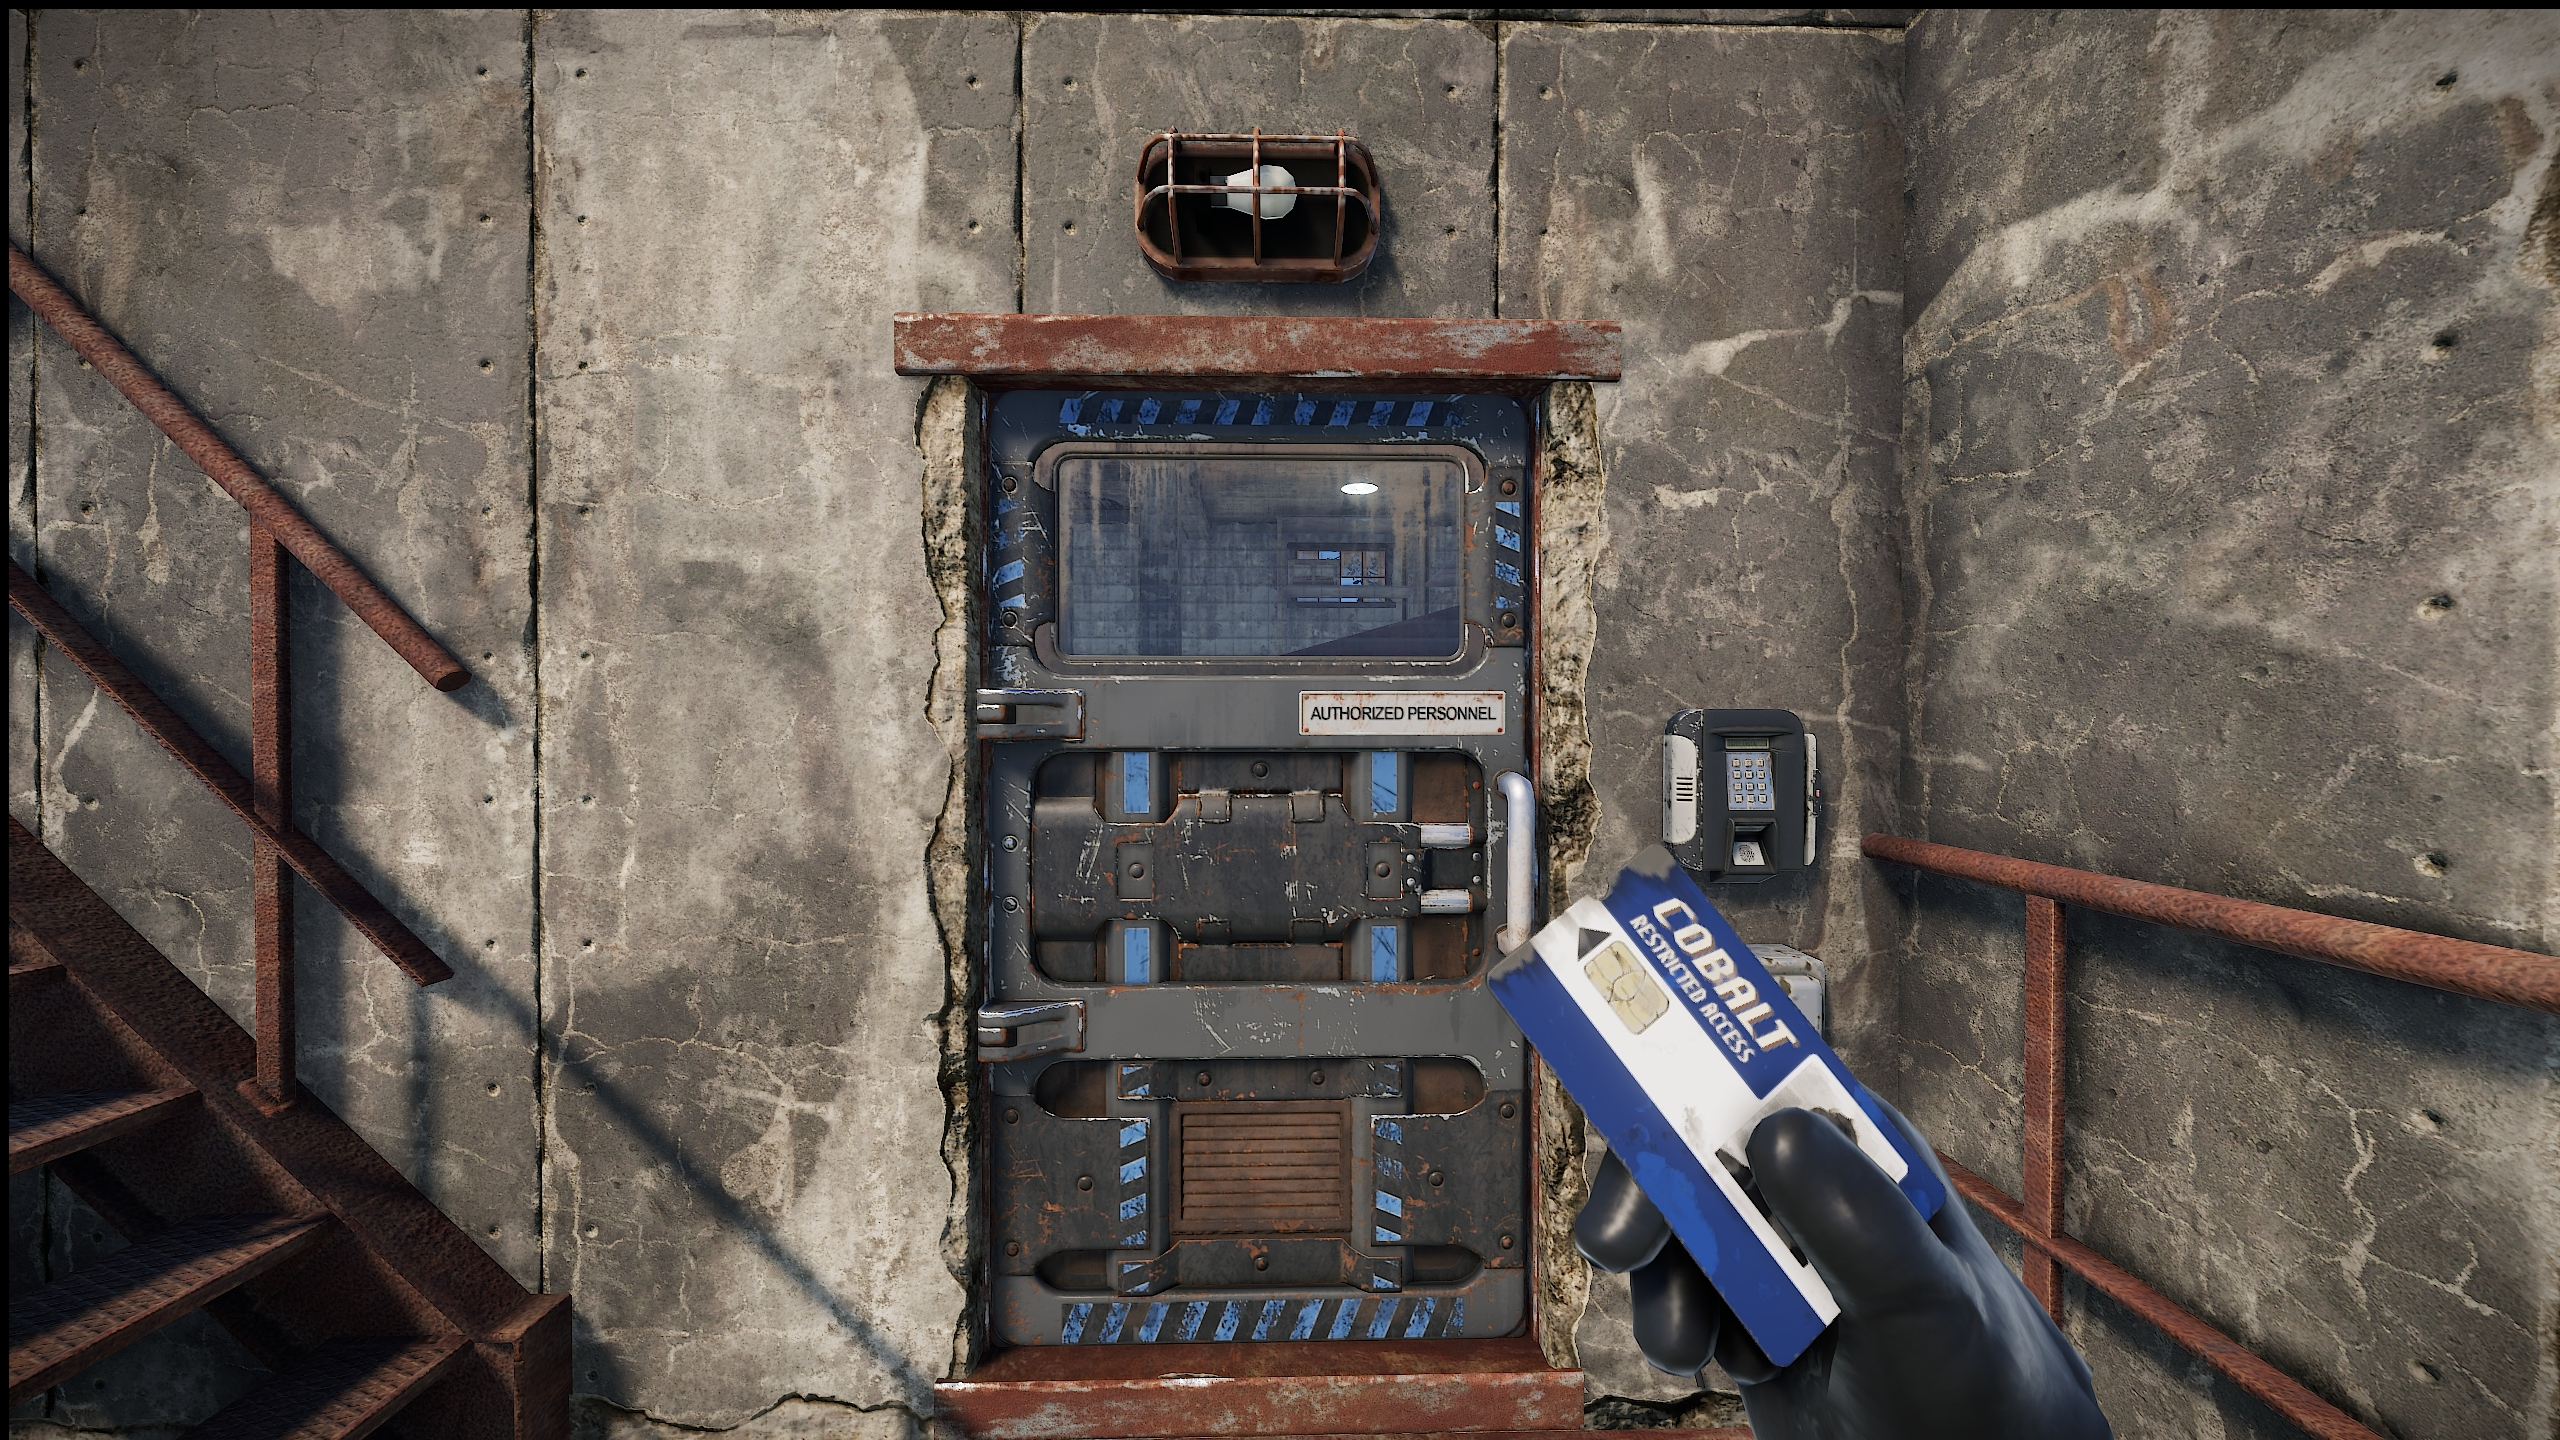 The Puzzle Update Rust Power Fuse Box City Medium Tier Grants Access To Red And Sometimes Other Cards